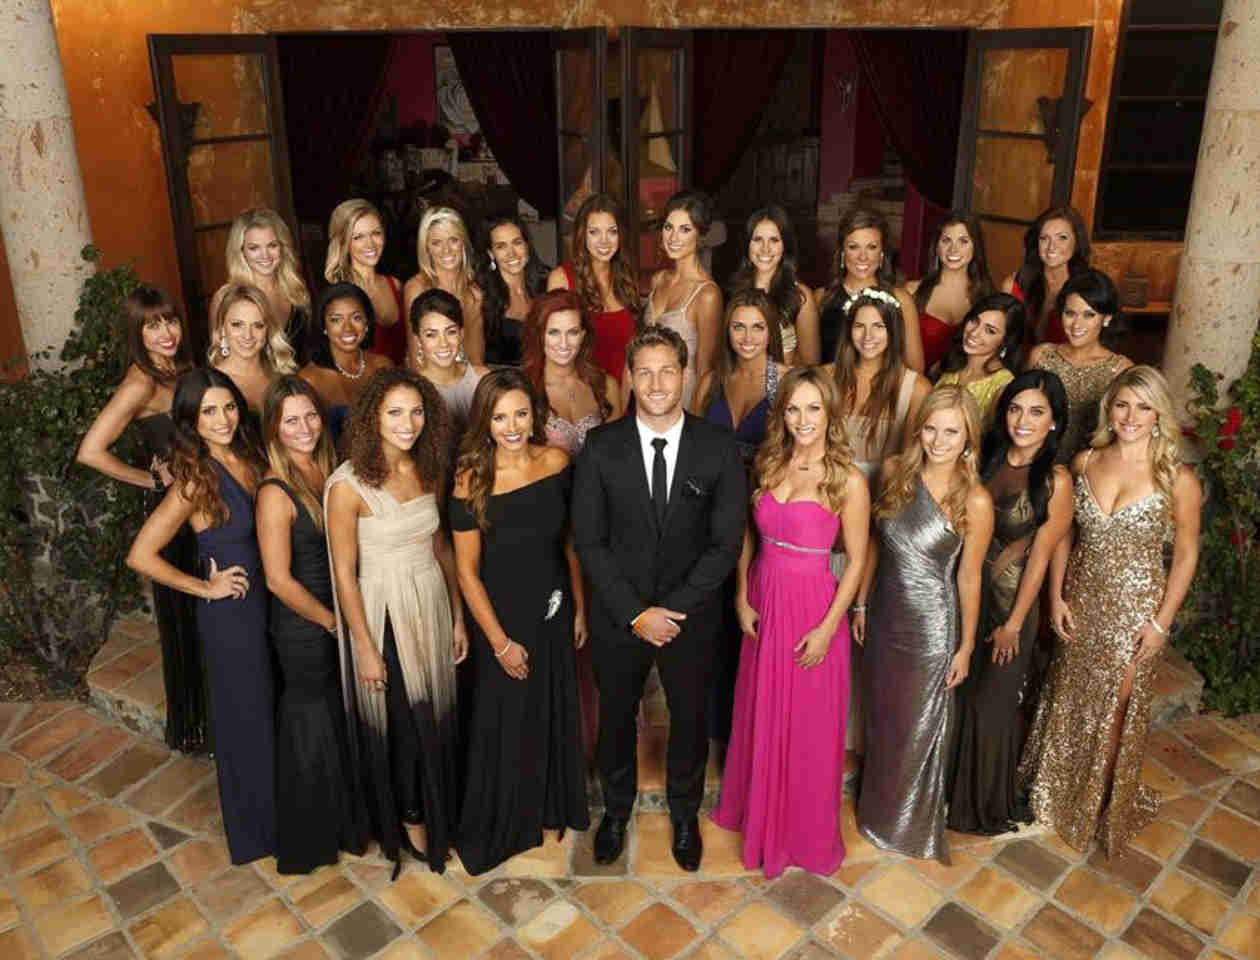 Bachelor 2014: Who Are Juan Pablo Galavis' Final Six Girls?